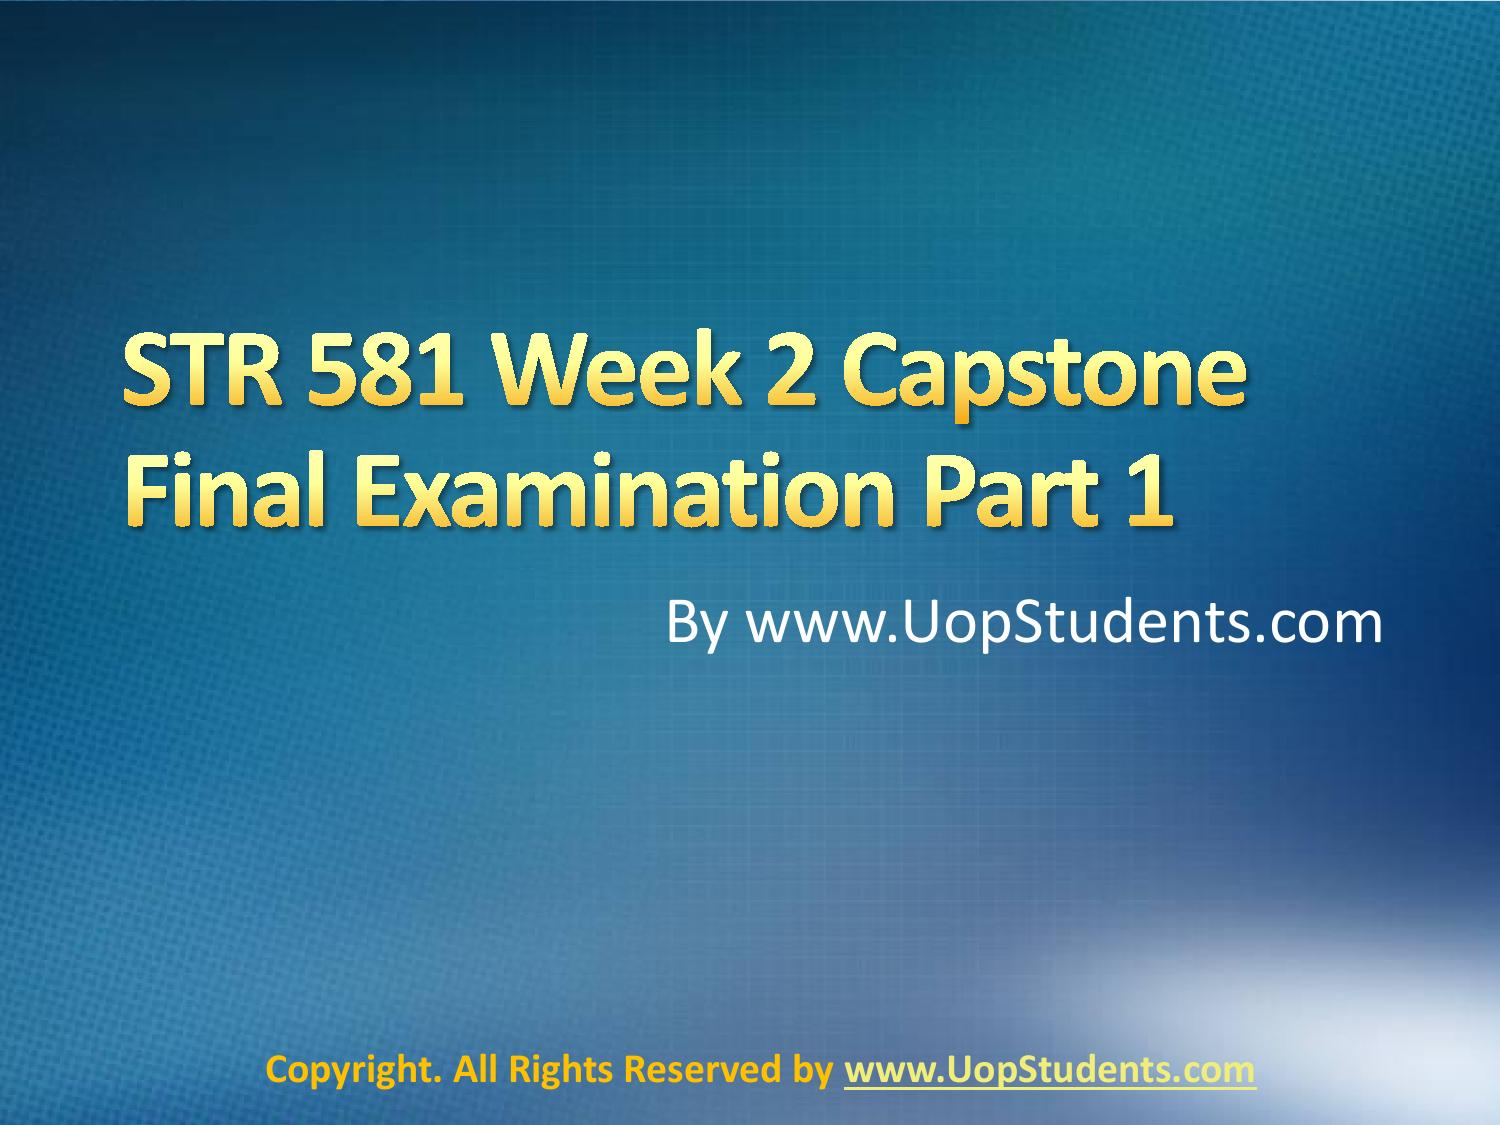 str 581 week 6 final exam Check out my latest presentation built on emazecom, where anyone can create & share professional presentations, websites and photo albums in minutes.